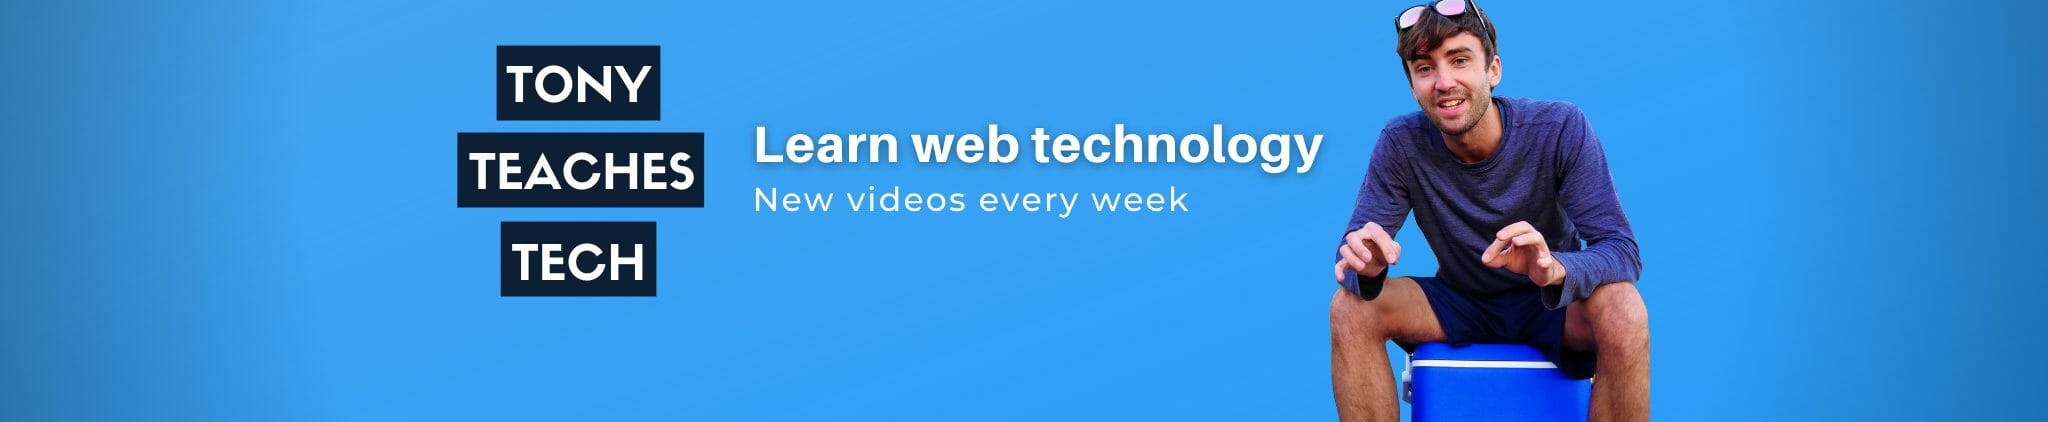 Tony Teaches Tech YouTube channel banner